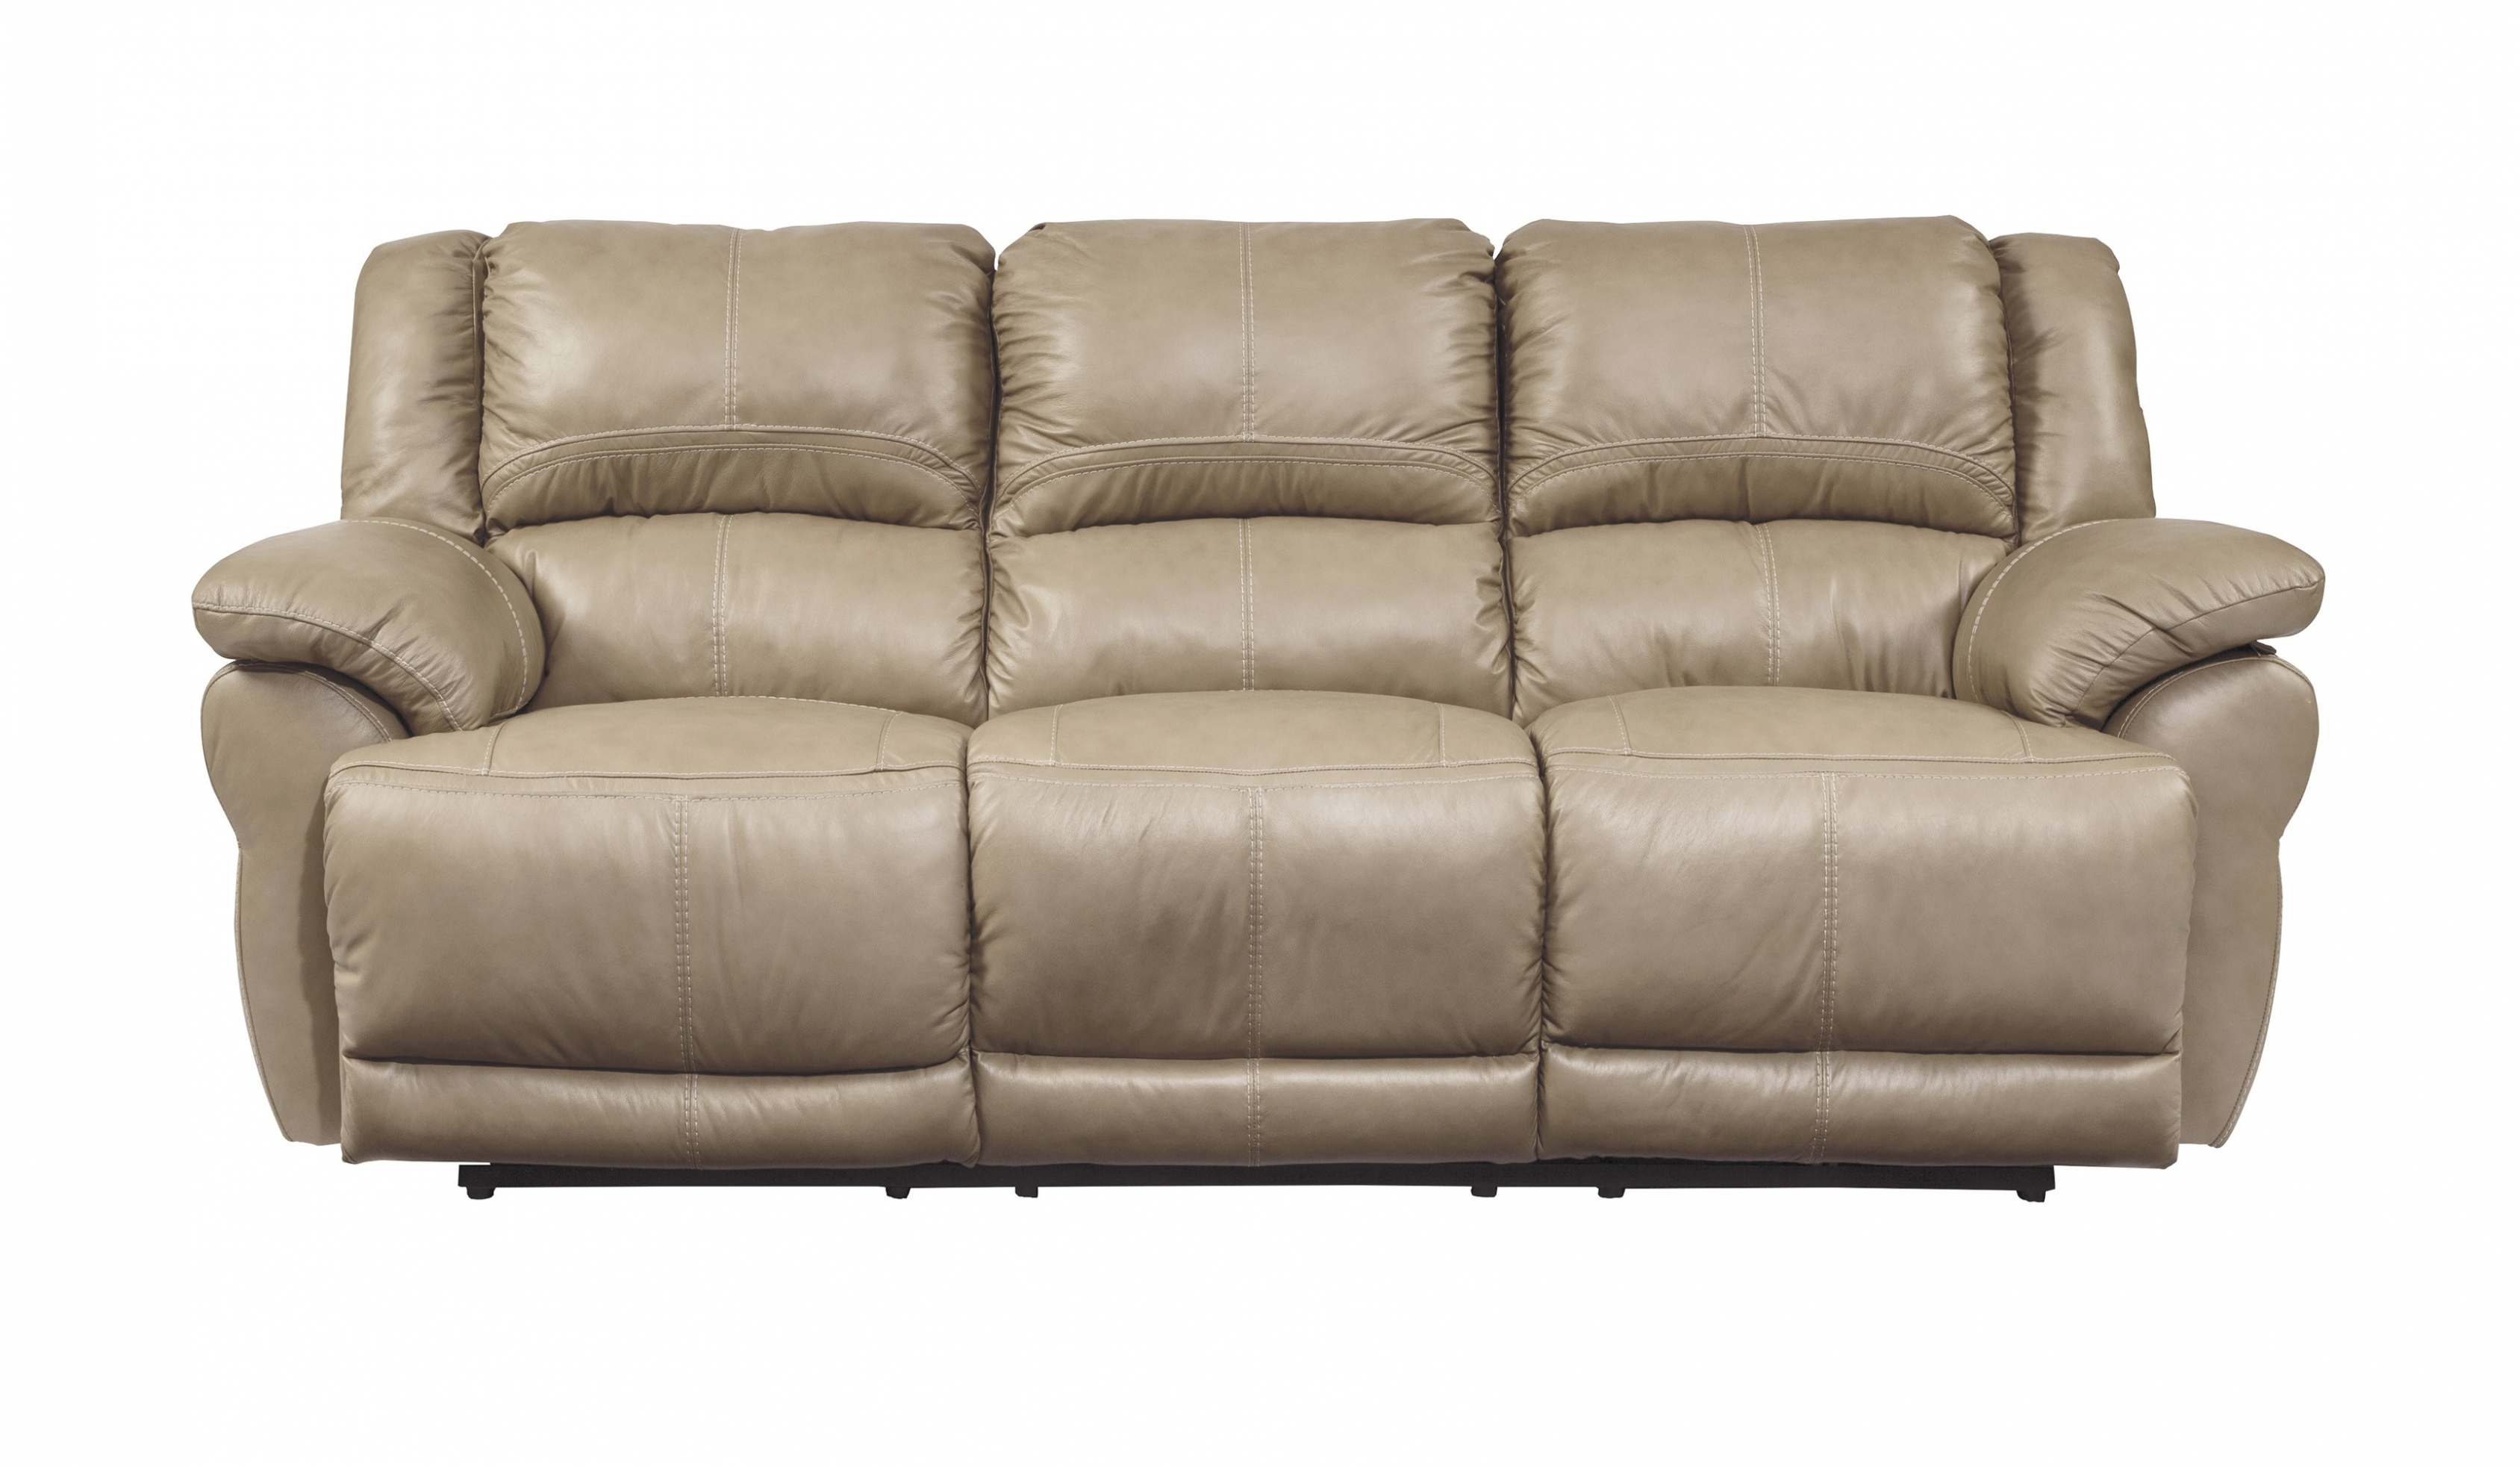 Motorized Sectional Sofa – Home And Textiles with Denali Light Grey 6 Piece Reclining Sectionals With 2 Power Headrests (Image 24 of 30)